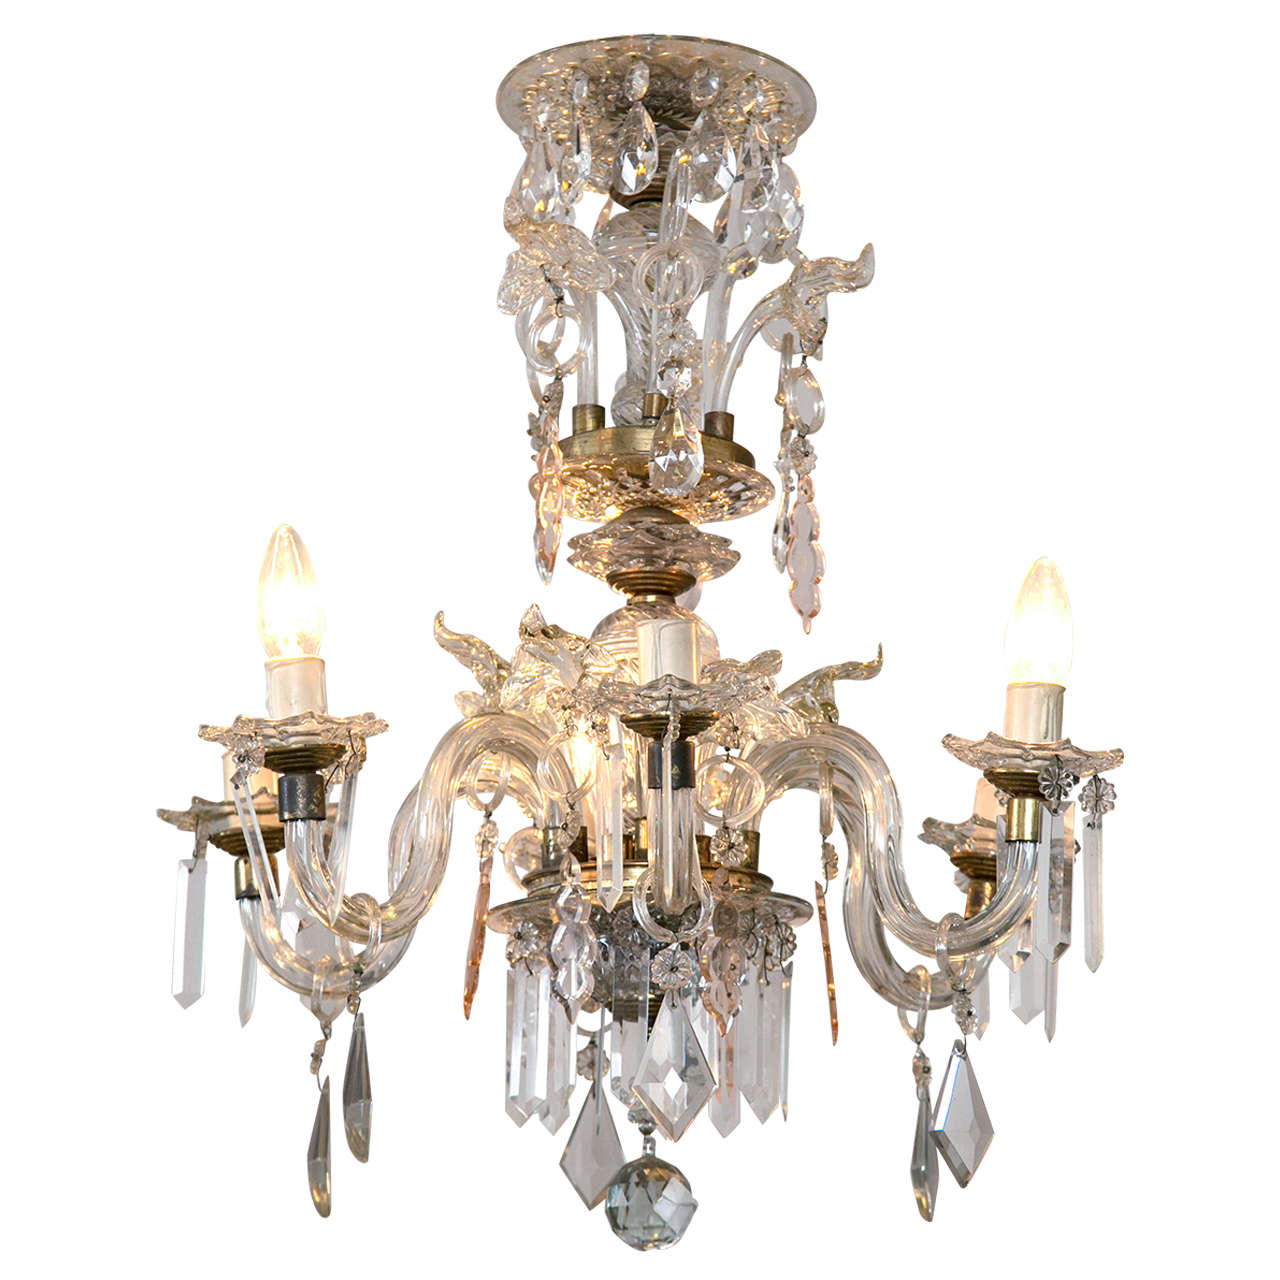 Brass five light large palm leaf with crystals chandelierhollywood venetian crystal chandelier with large crystals 1920s six light rare scroll arms aloadofball Image collections